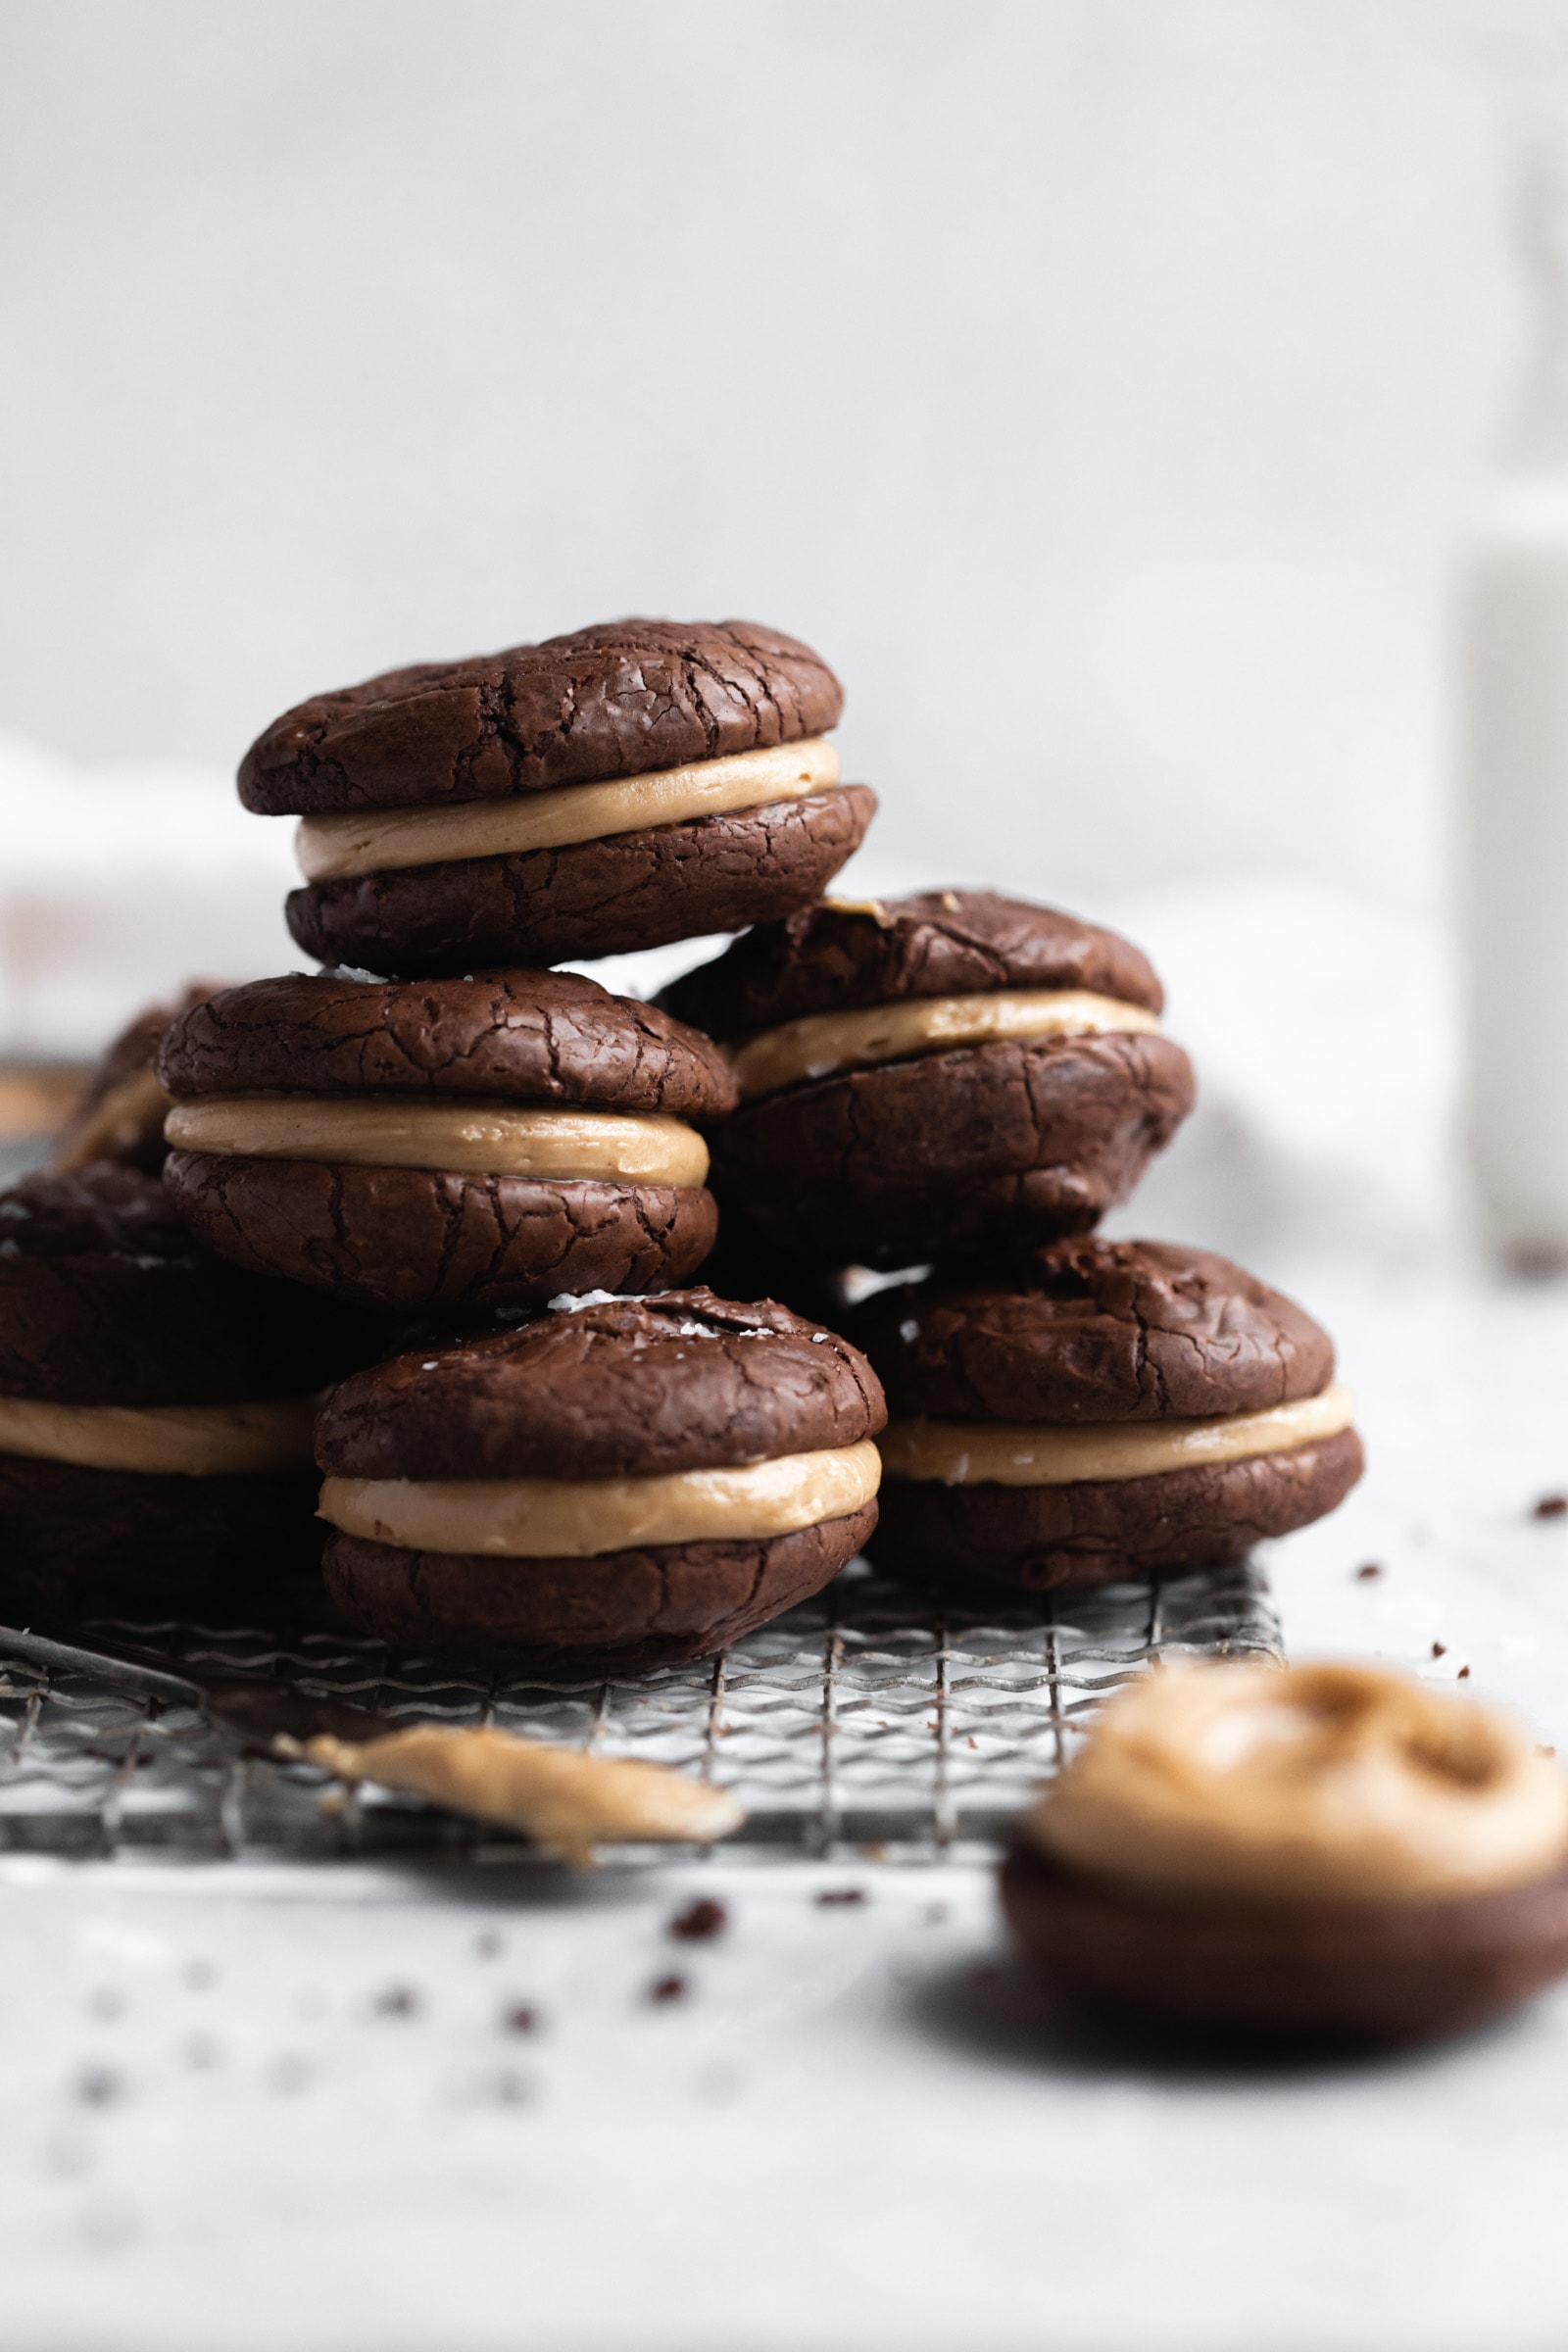 stacks of peanut butter chocolate sandwich cookies